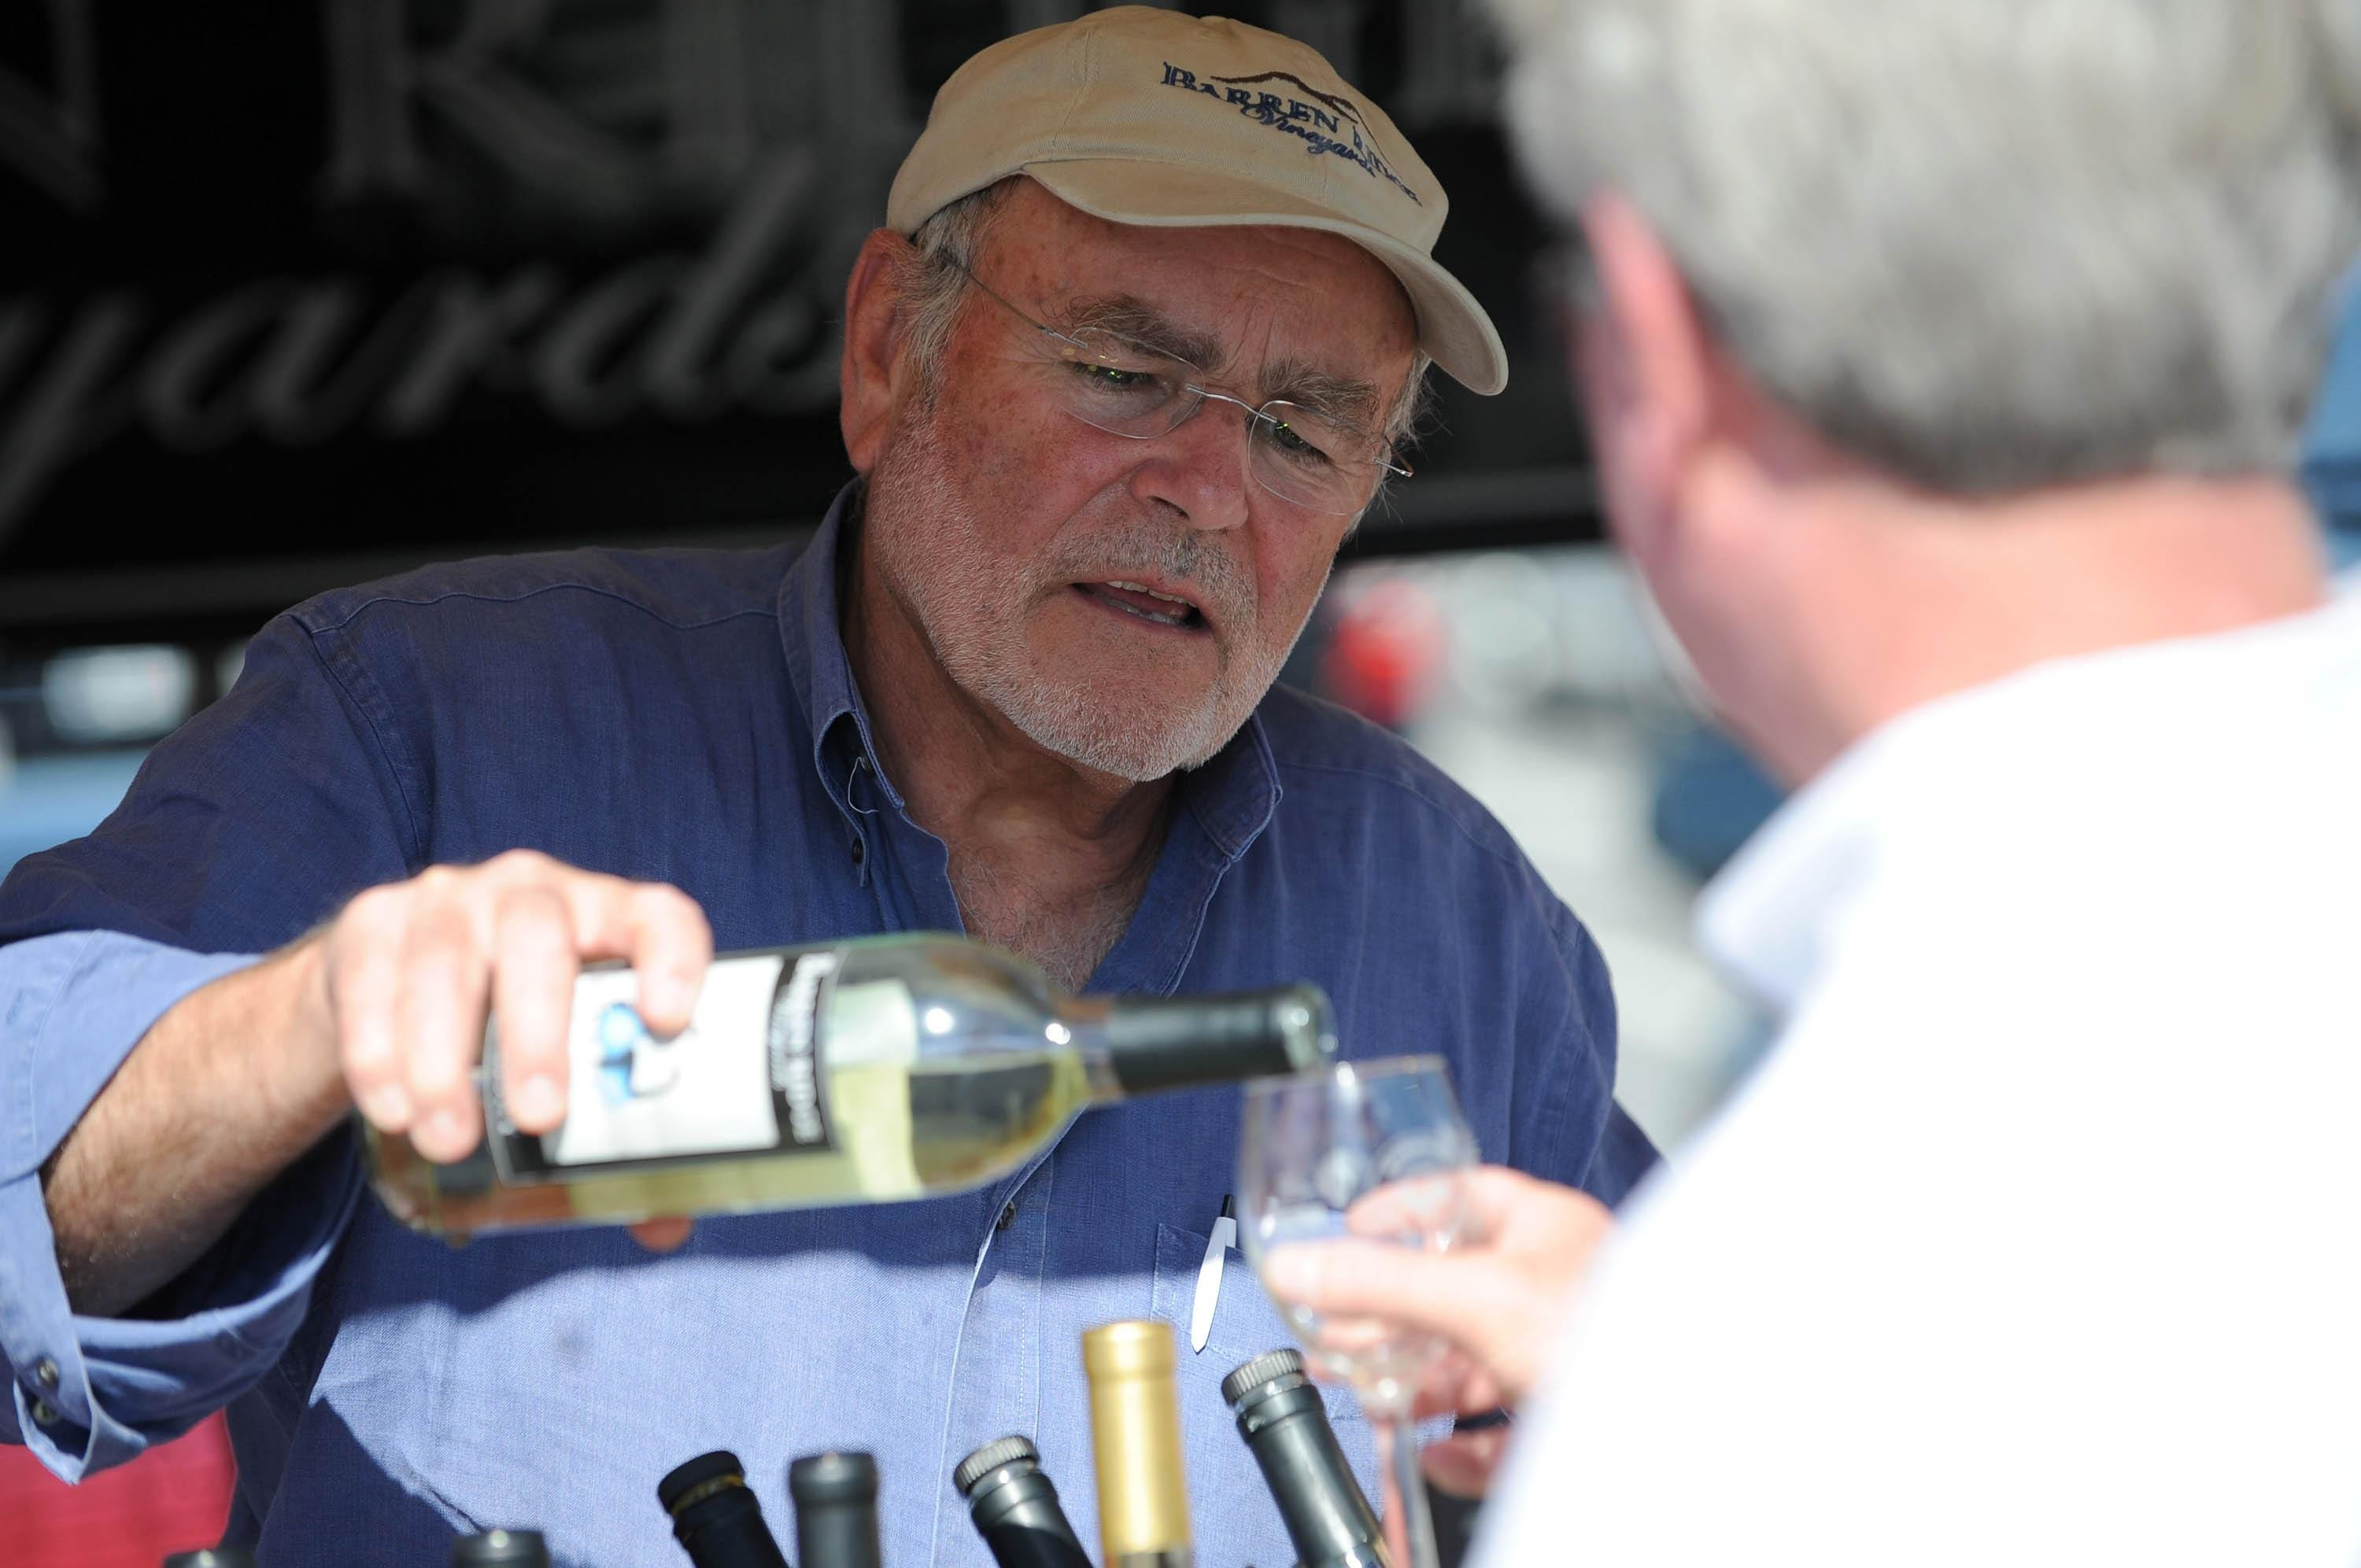 Local wine owner named president of growers association